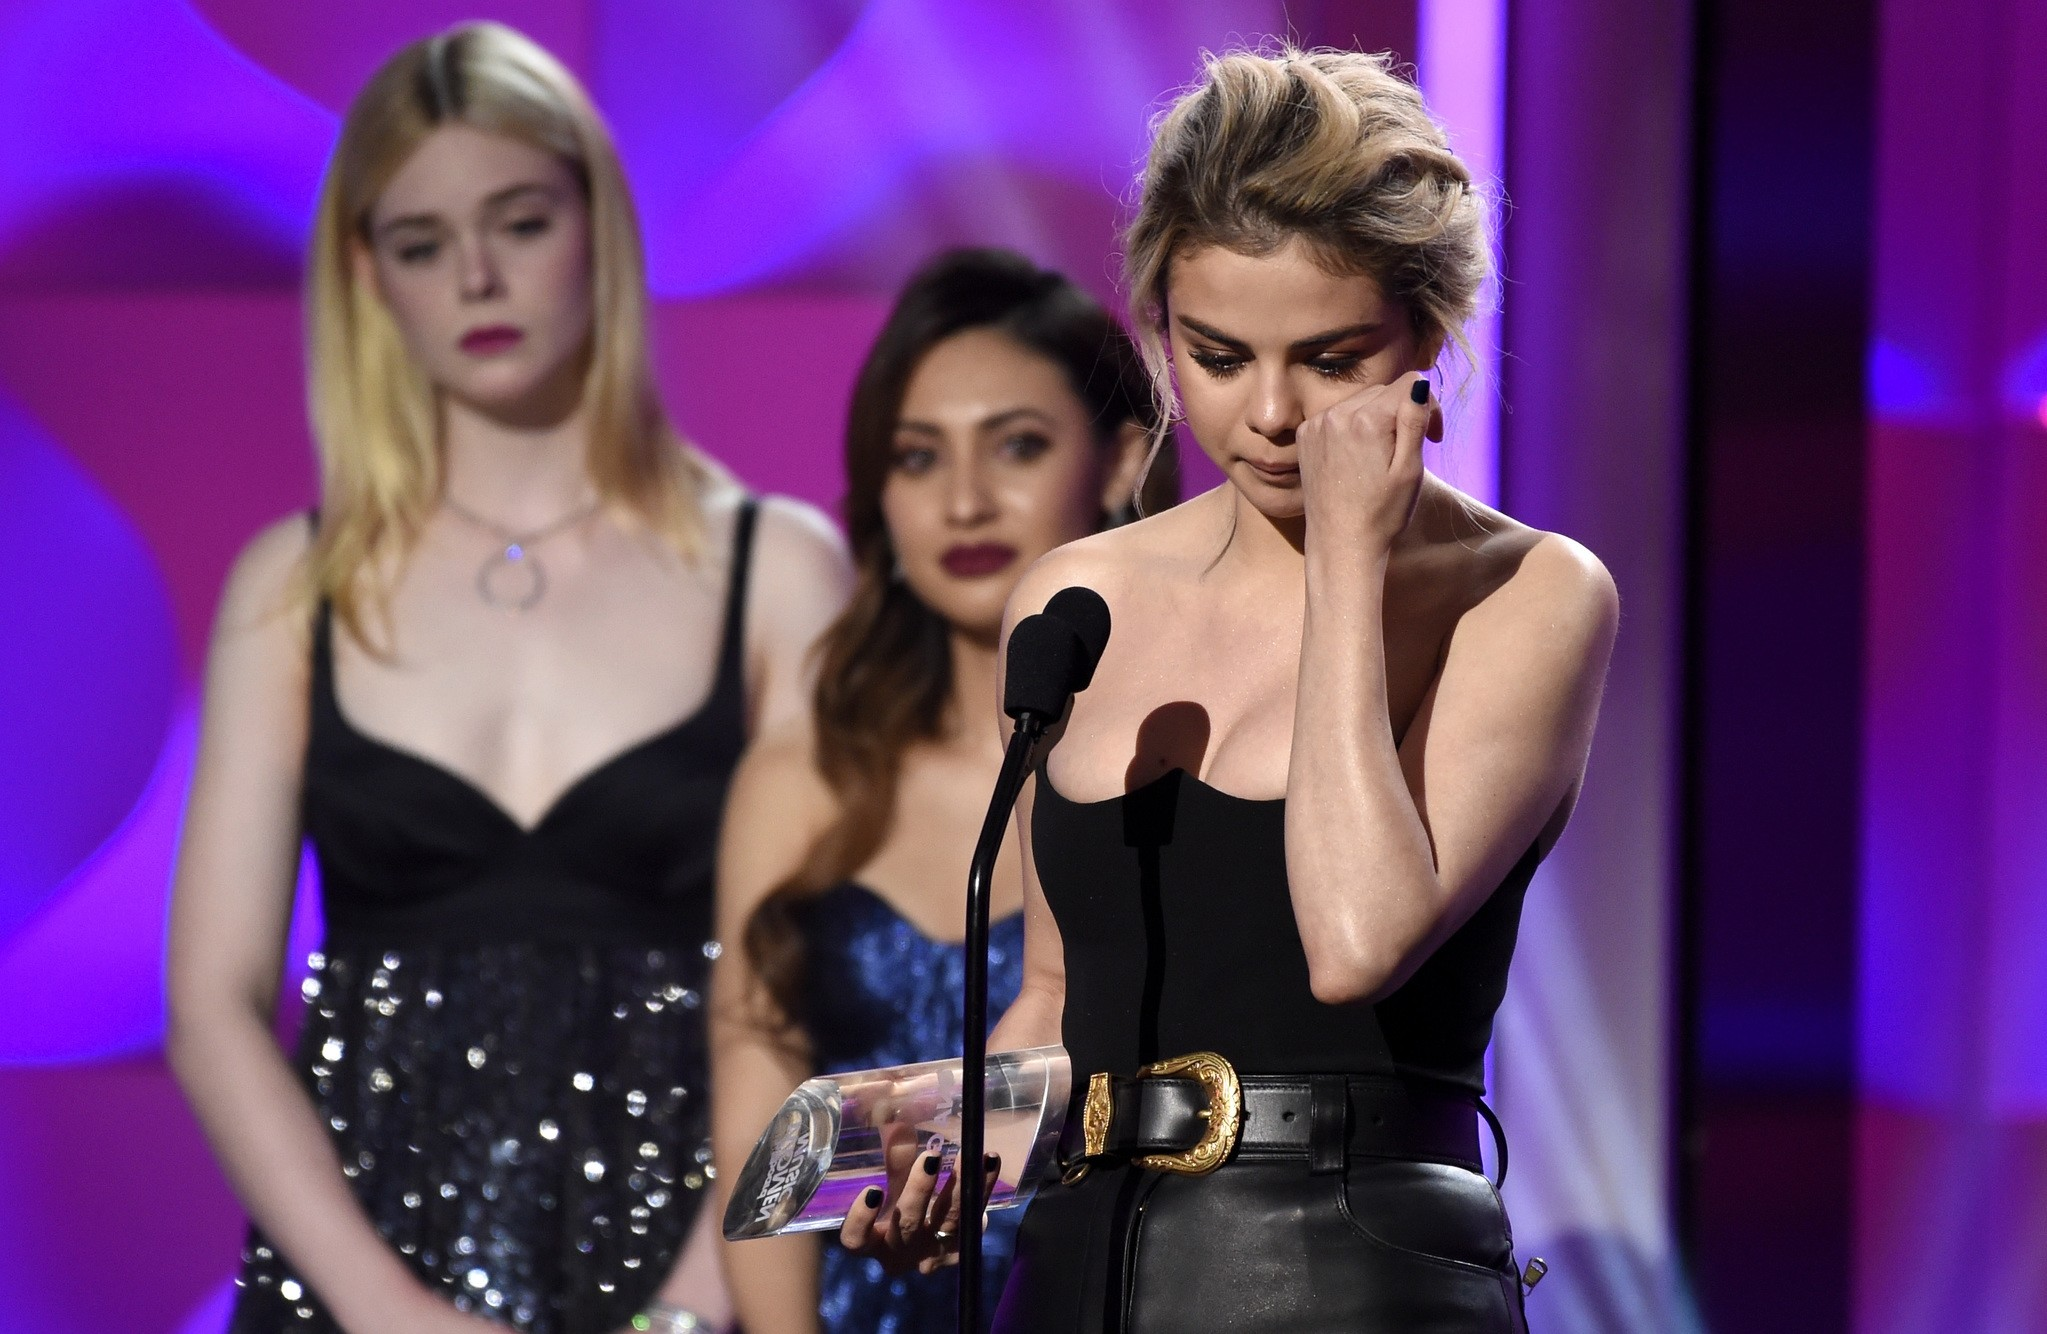 Selena Gomez wipes a tear as she accepts the woman of the year award at the Billboard Women in Music event at the Ray Dolby Ballroom on Thursday, Nov. 30, 2017, in Los Angeles. (AP Photo)